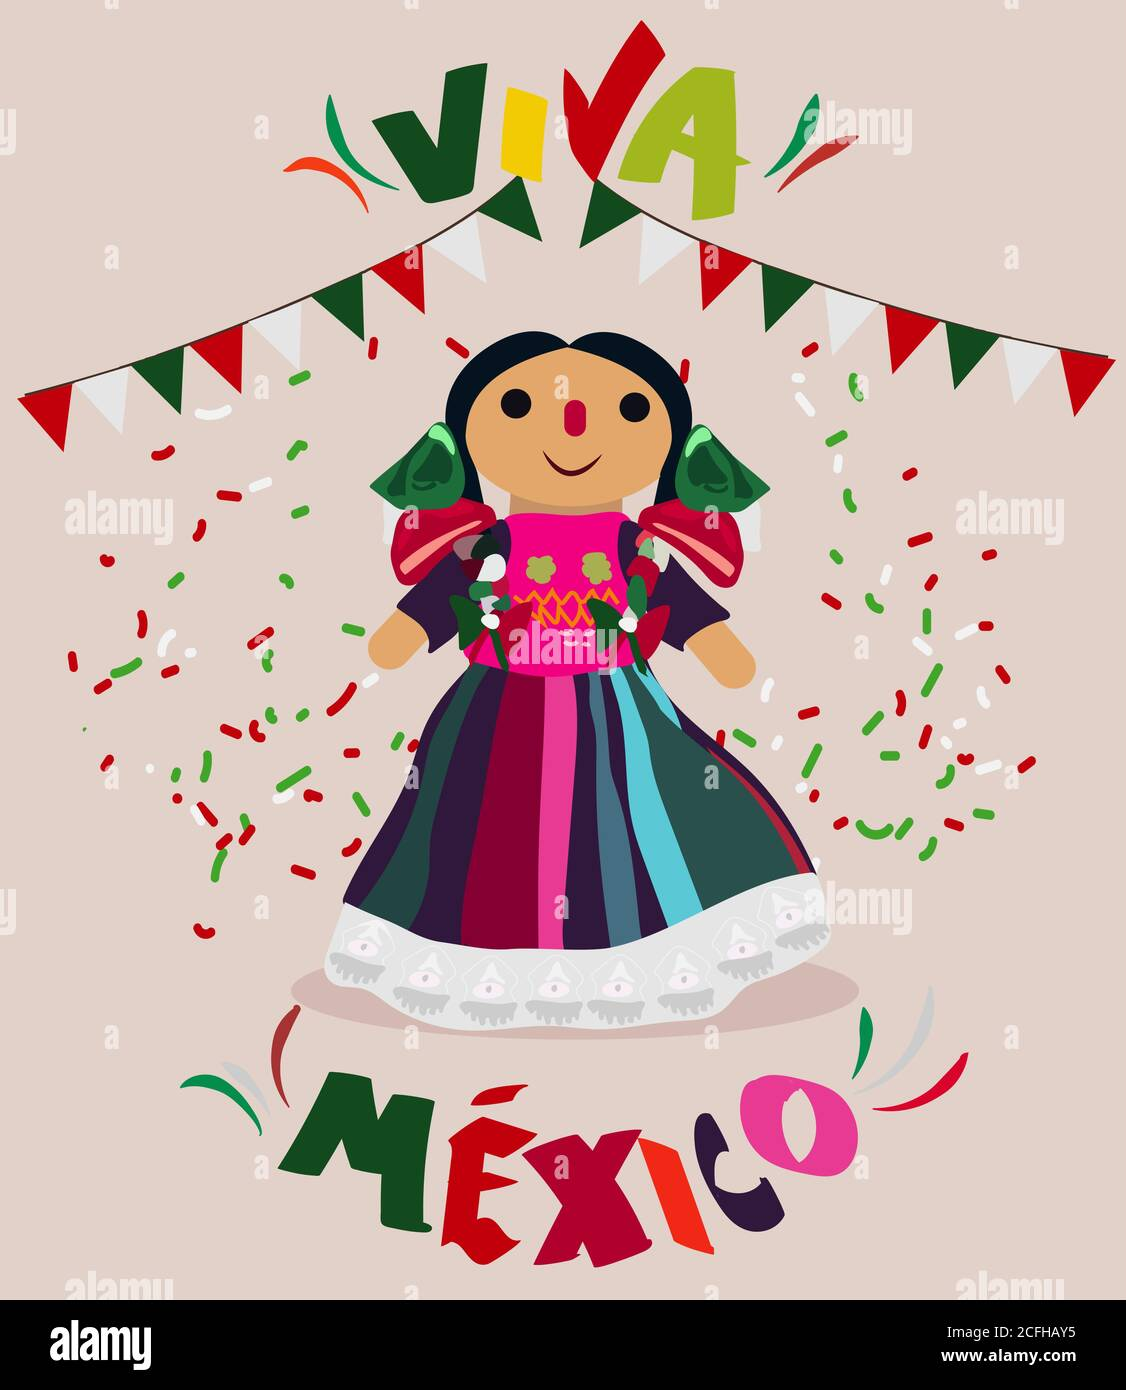 Mexican Independence Day Celebration Text In Spanish Long Live Mexico Stock Vector Image Art Alamy